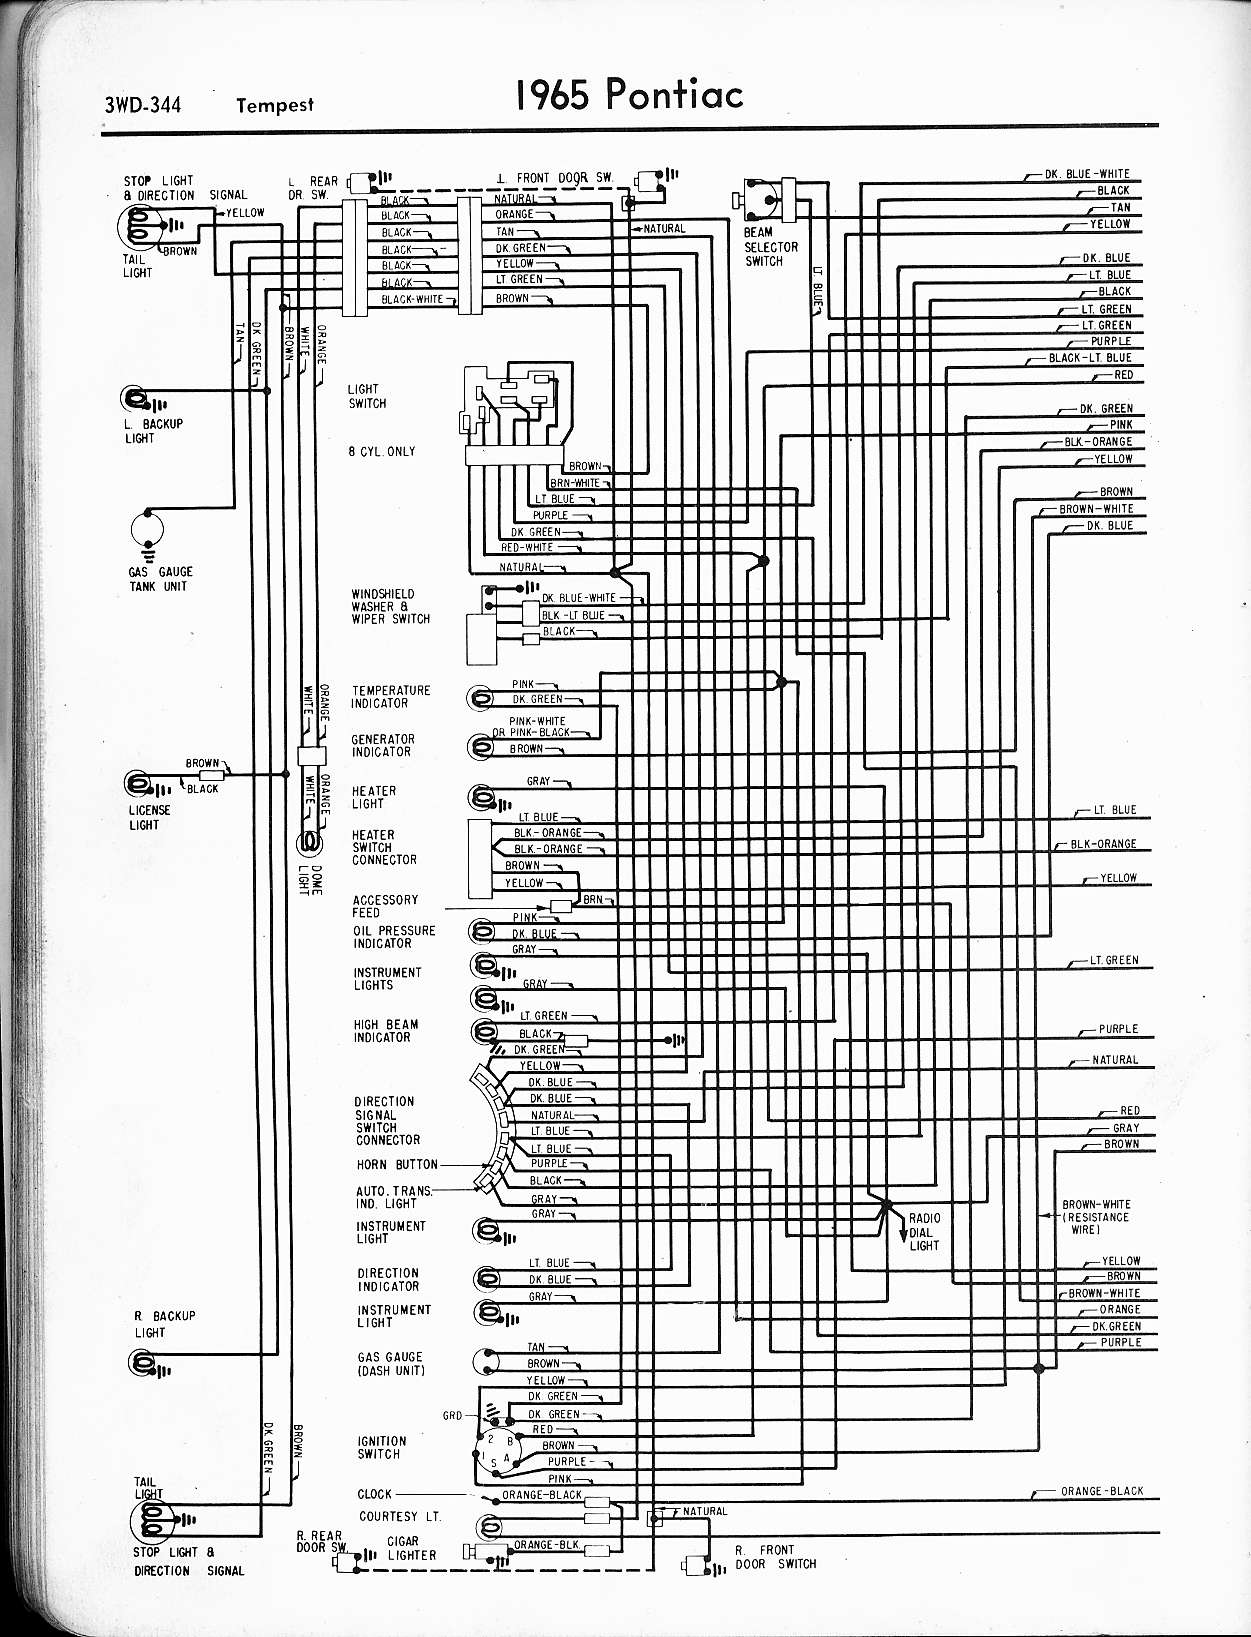 wallace racing wiring diagrams rh wallaceracing com 1965 gto tach wiring  diagram 1965 gto wiring diagram